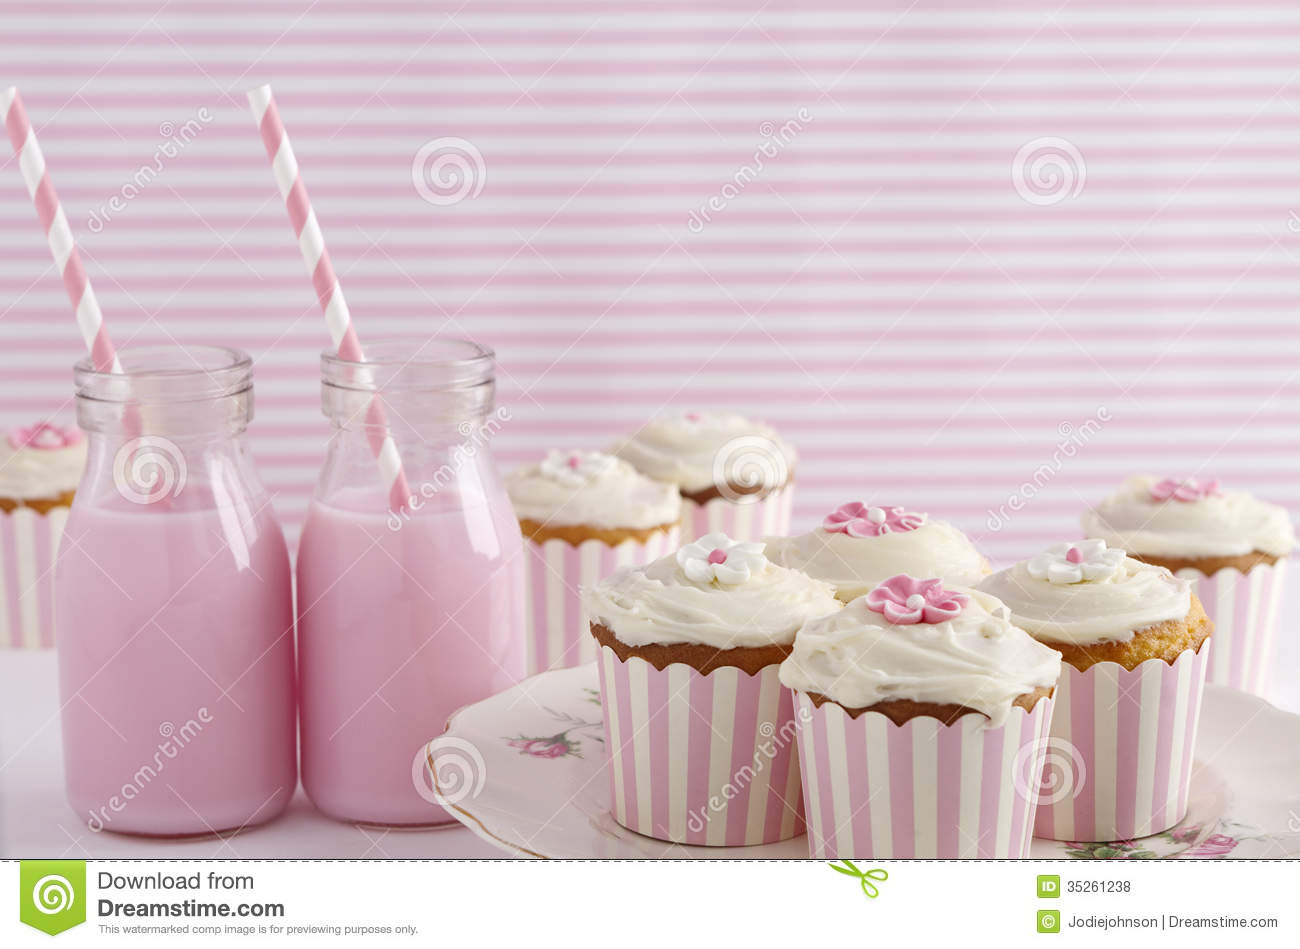 Pink Retro Theme Dessert Table Birthday Party Stock Photo Image of